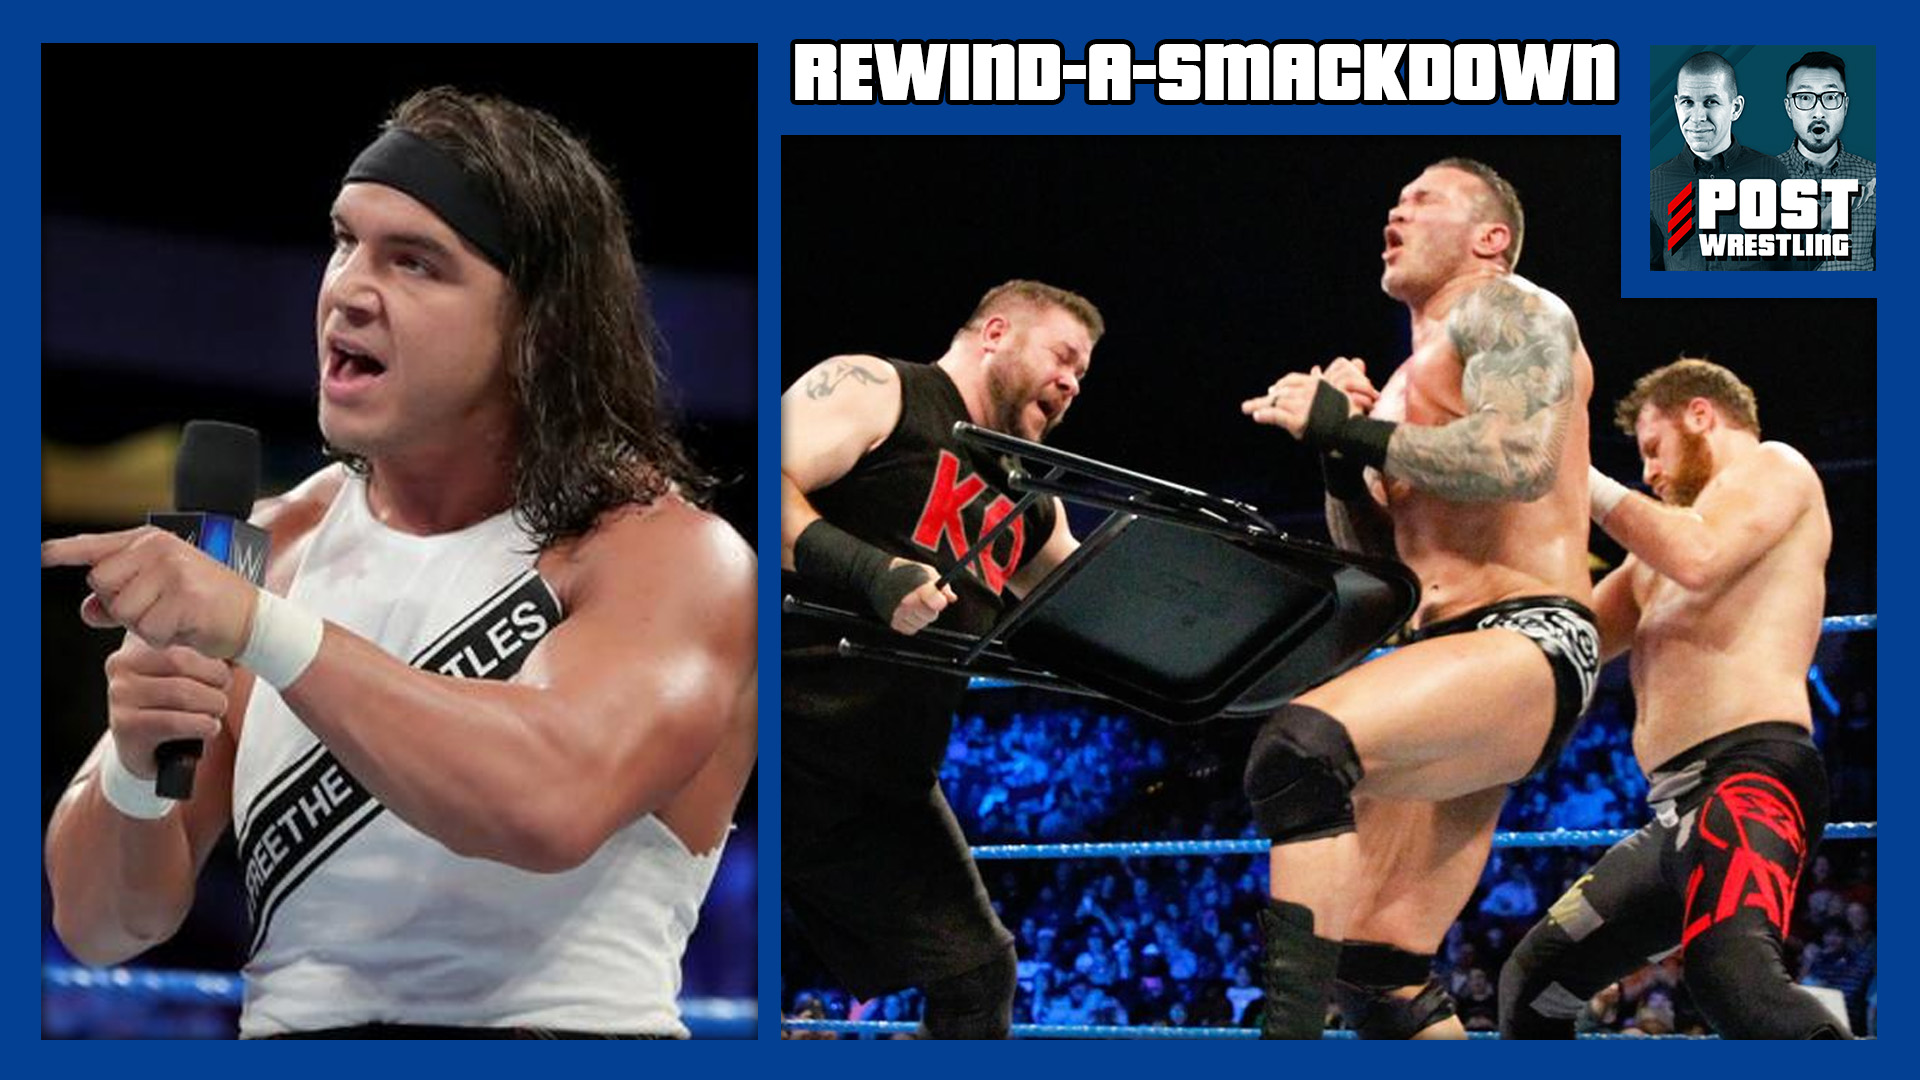 REWIND-A-SMACKDOWN 1/9/18: Owens & Zayn in Handicap Match, Gable & Benjamin Demand Titles, Hype Bros. Face Off